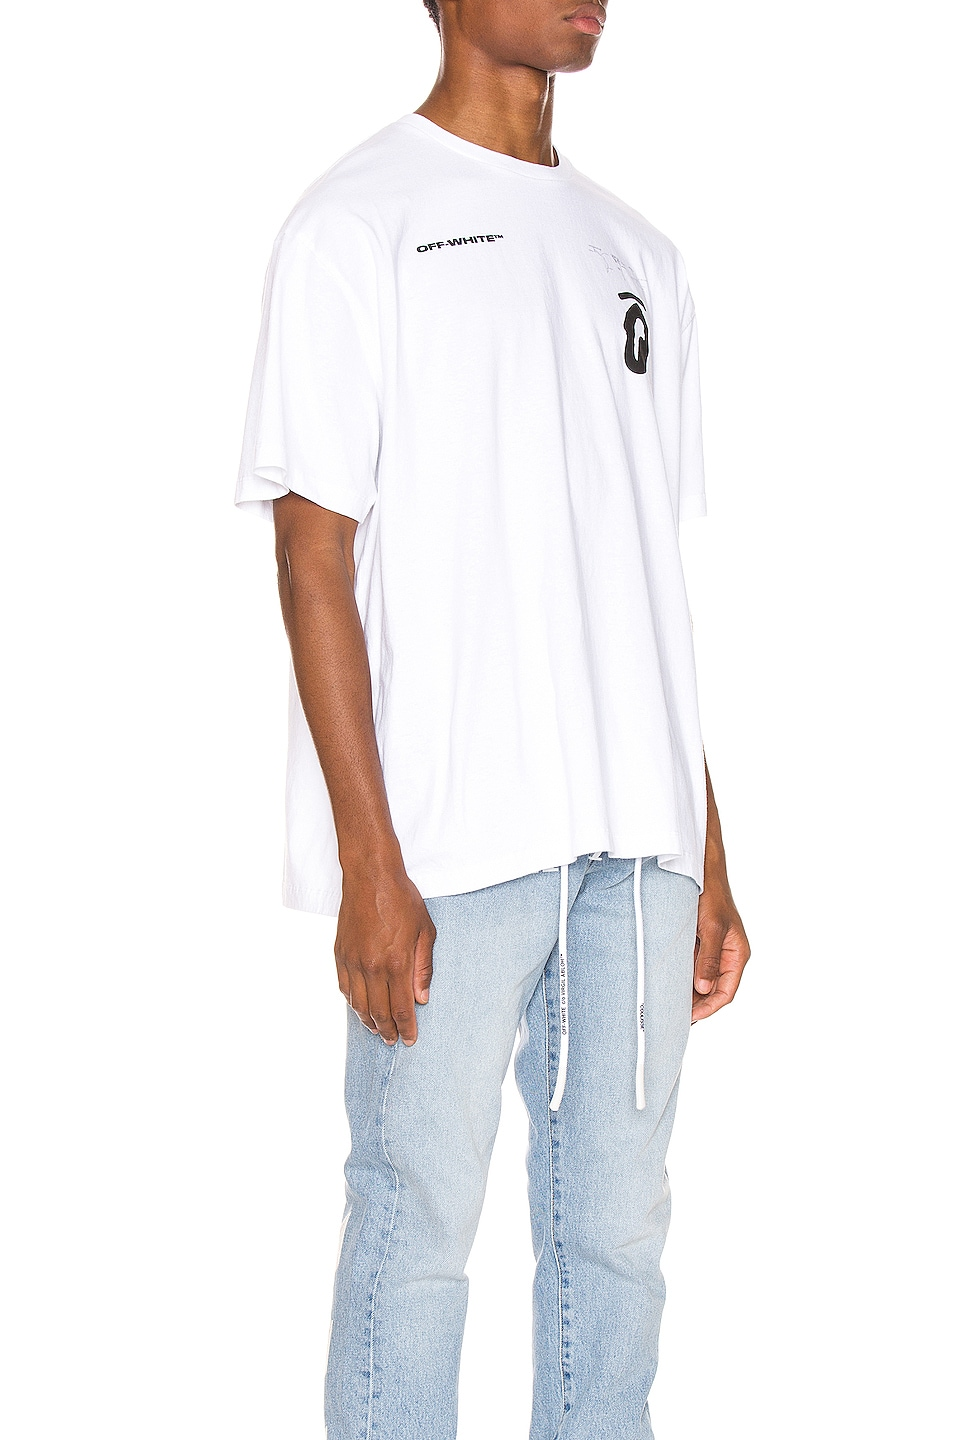 Image 3 of OFF-WHITE Splitted Arrows Oversized Tee in White & Black